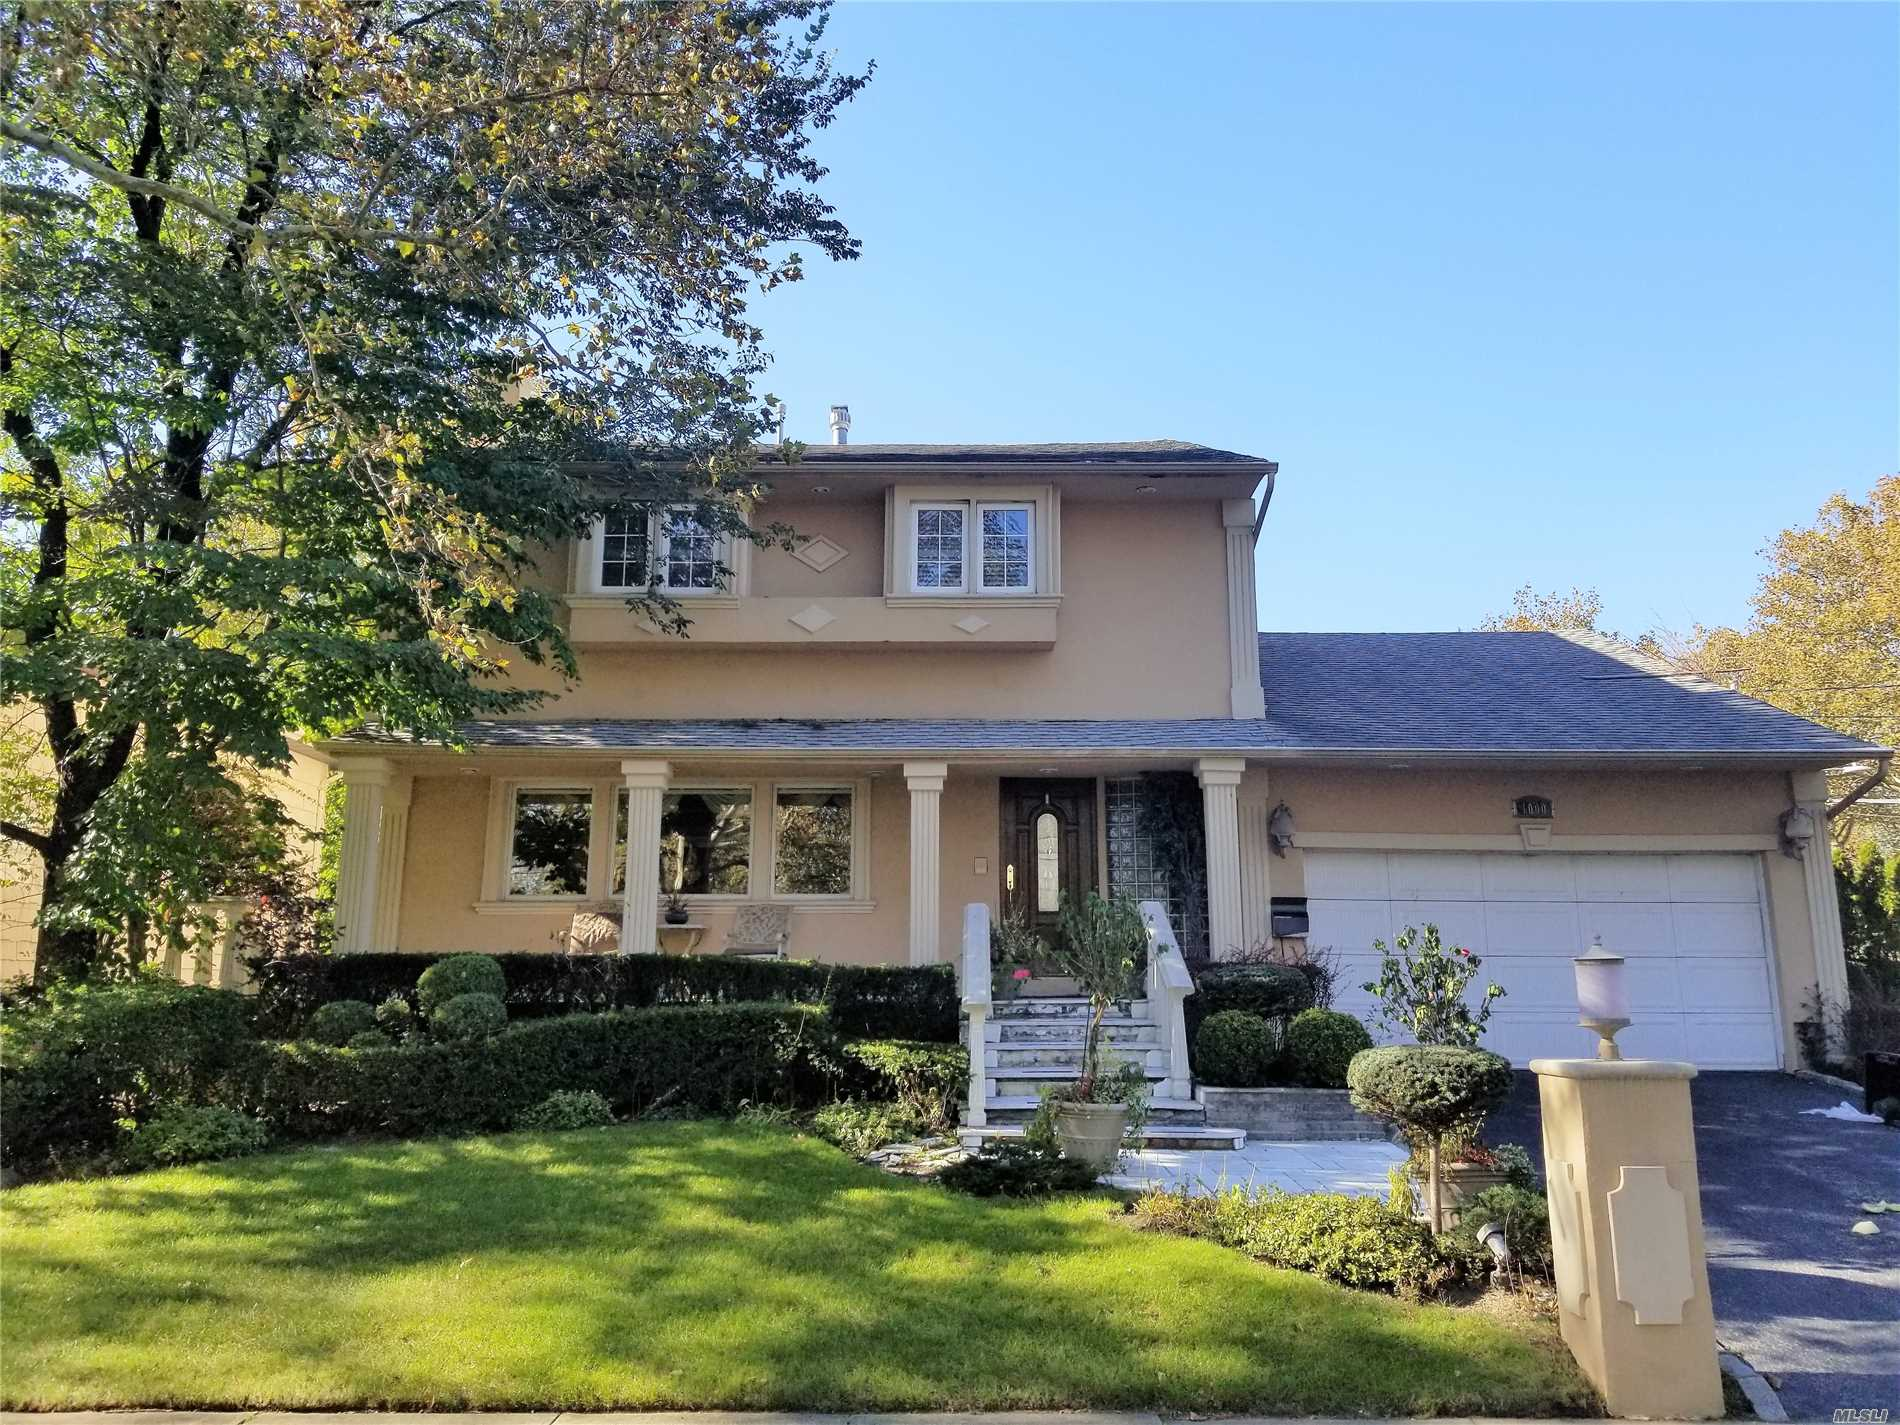 Opportunity Is Knocking! This 1 Family Detached, Colonial Features A Full Finished Basement, 4 Bedrooms, 3 Full Baths, A 2 Car Attached Garage, An In-Ground Pool & More. Property Sits On A Nicely Sized 81X113 Lot. It's Conveniently Located Near Schools, Places Of Worship, Restaurants & Shopping Areas Etc. Don't Miss This One!